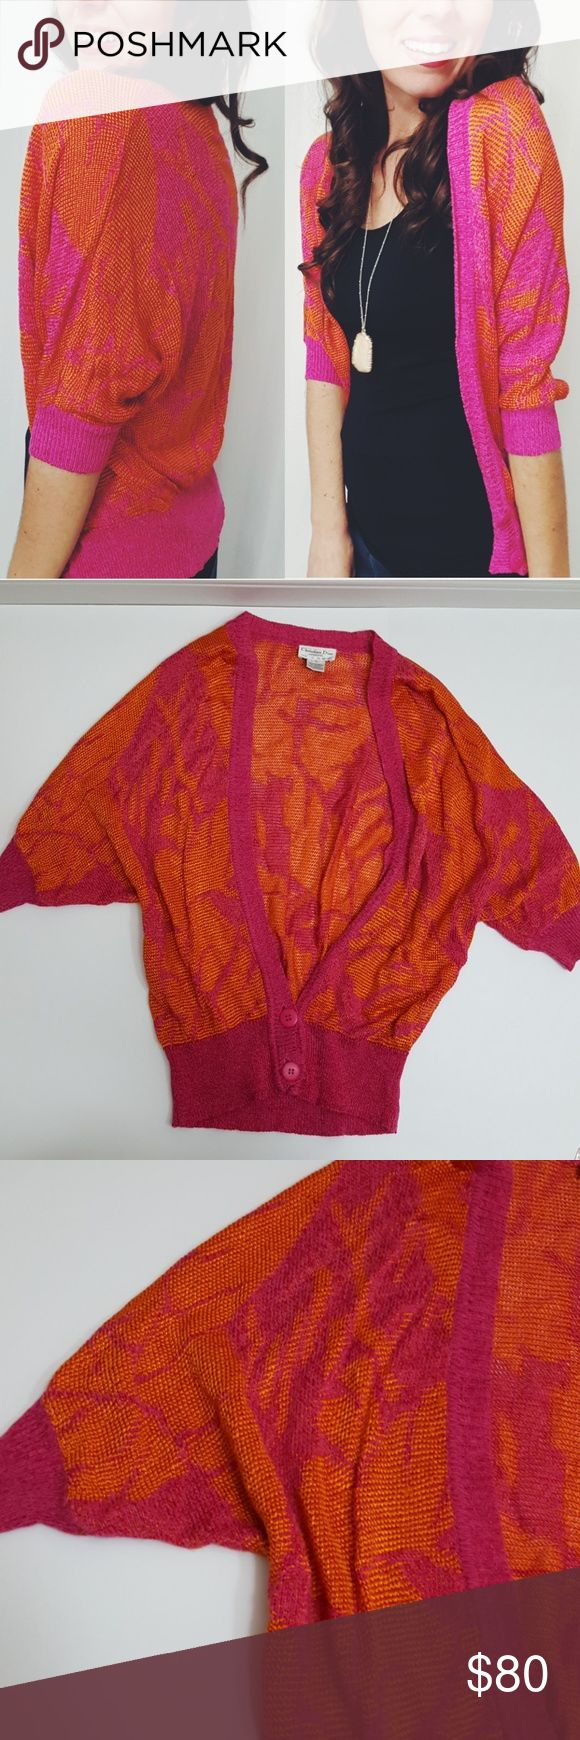 Christian Dior pink & orange cardigan -C7 In good condition! Vintage Christian Dior cardigan size large. Loose fit, stretch material. Orange and pink. Used item: lovingly inspected for wear. Pictures show any signs of wear. Bundle up! Offers always welcome:) Christian Dior Sweaters Cardigans